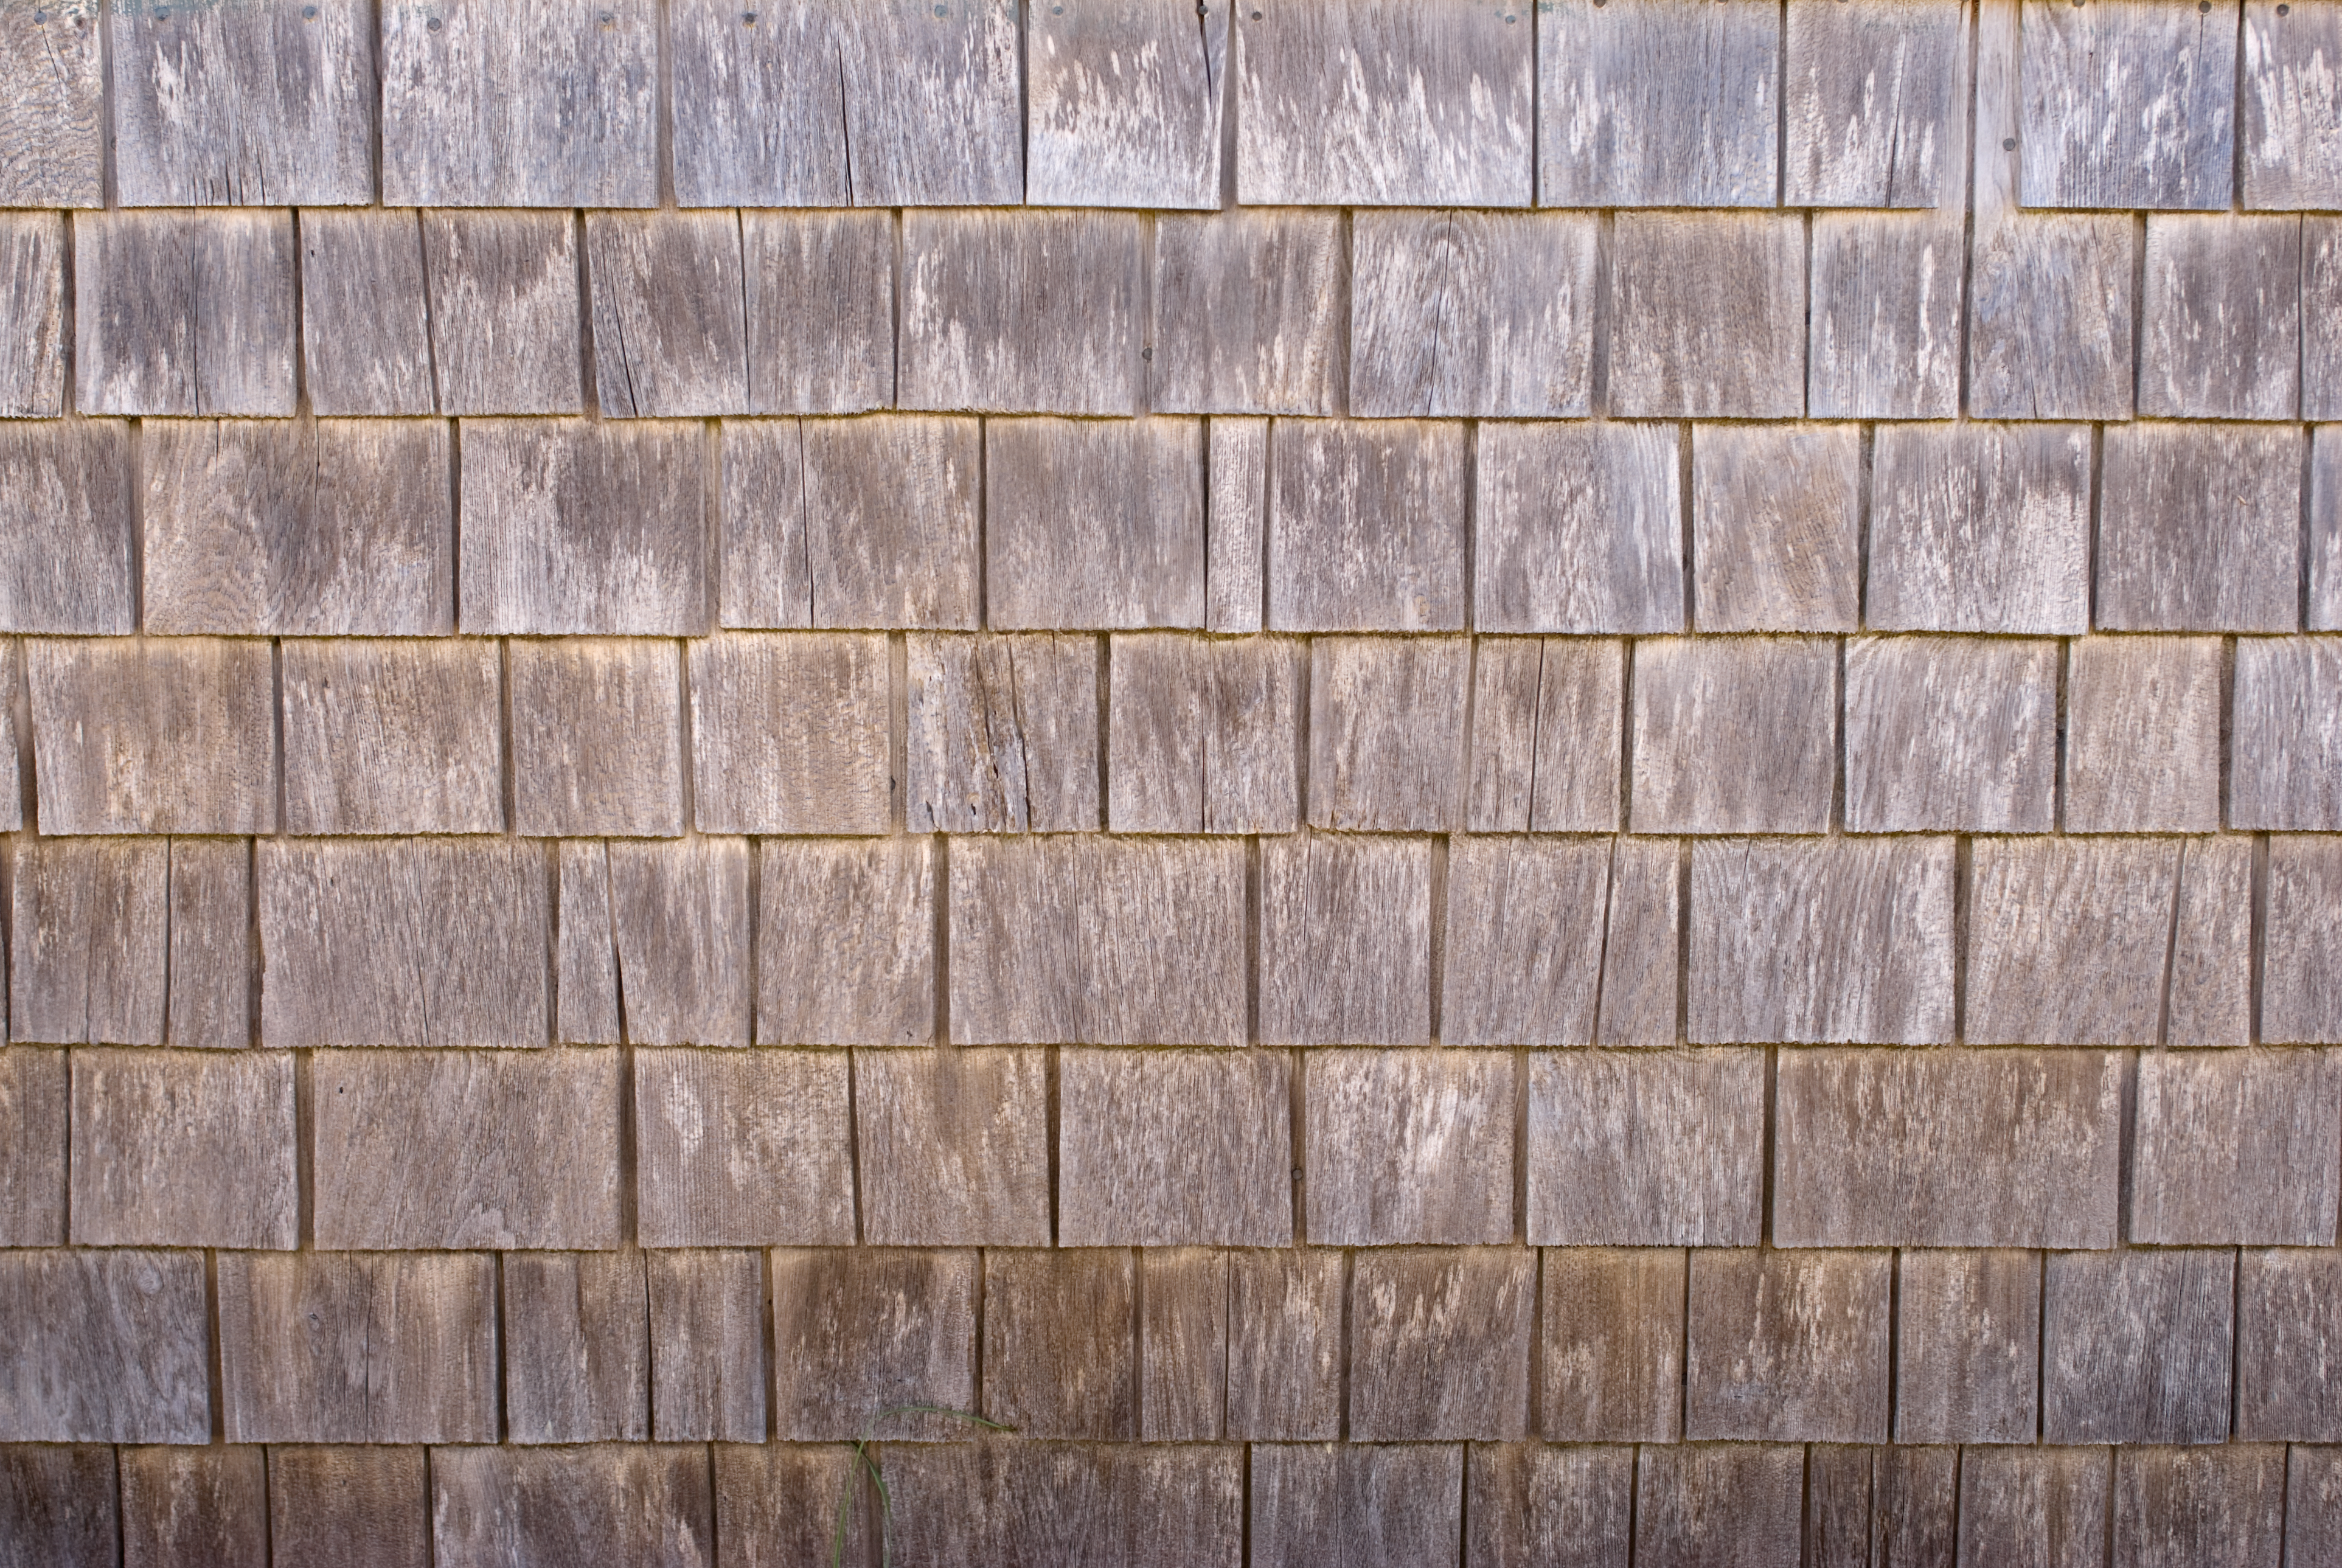 How To Tell If Cedar Shingles Should Be Replaced Turada